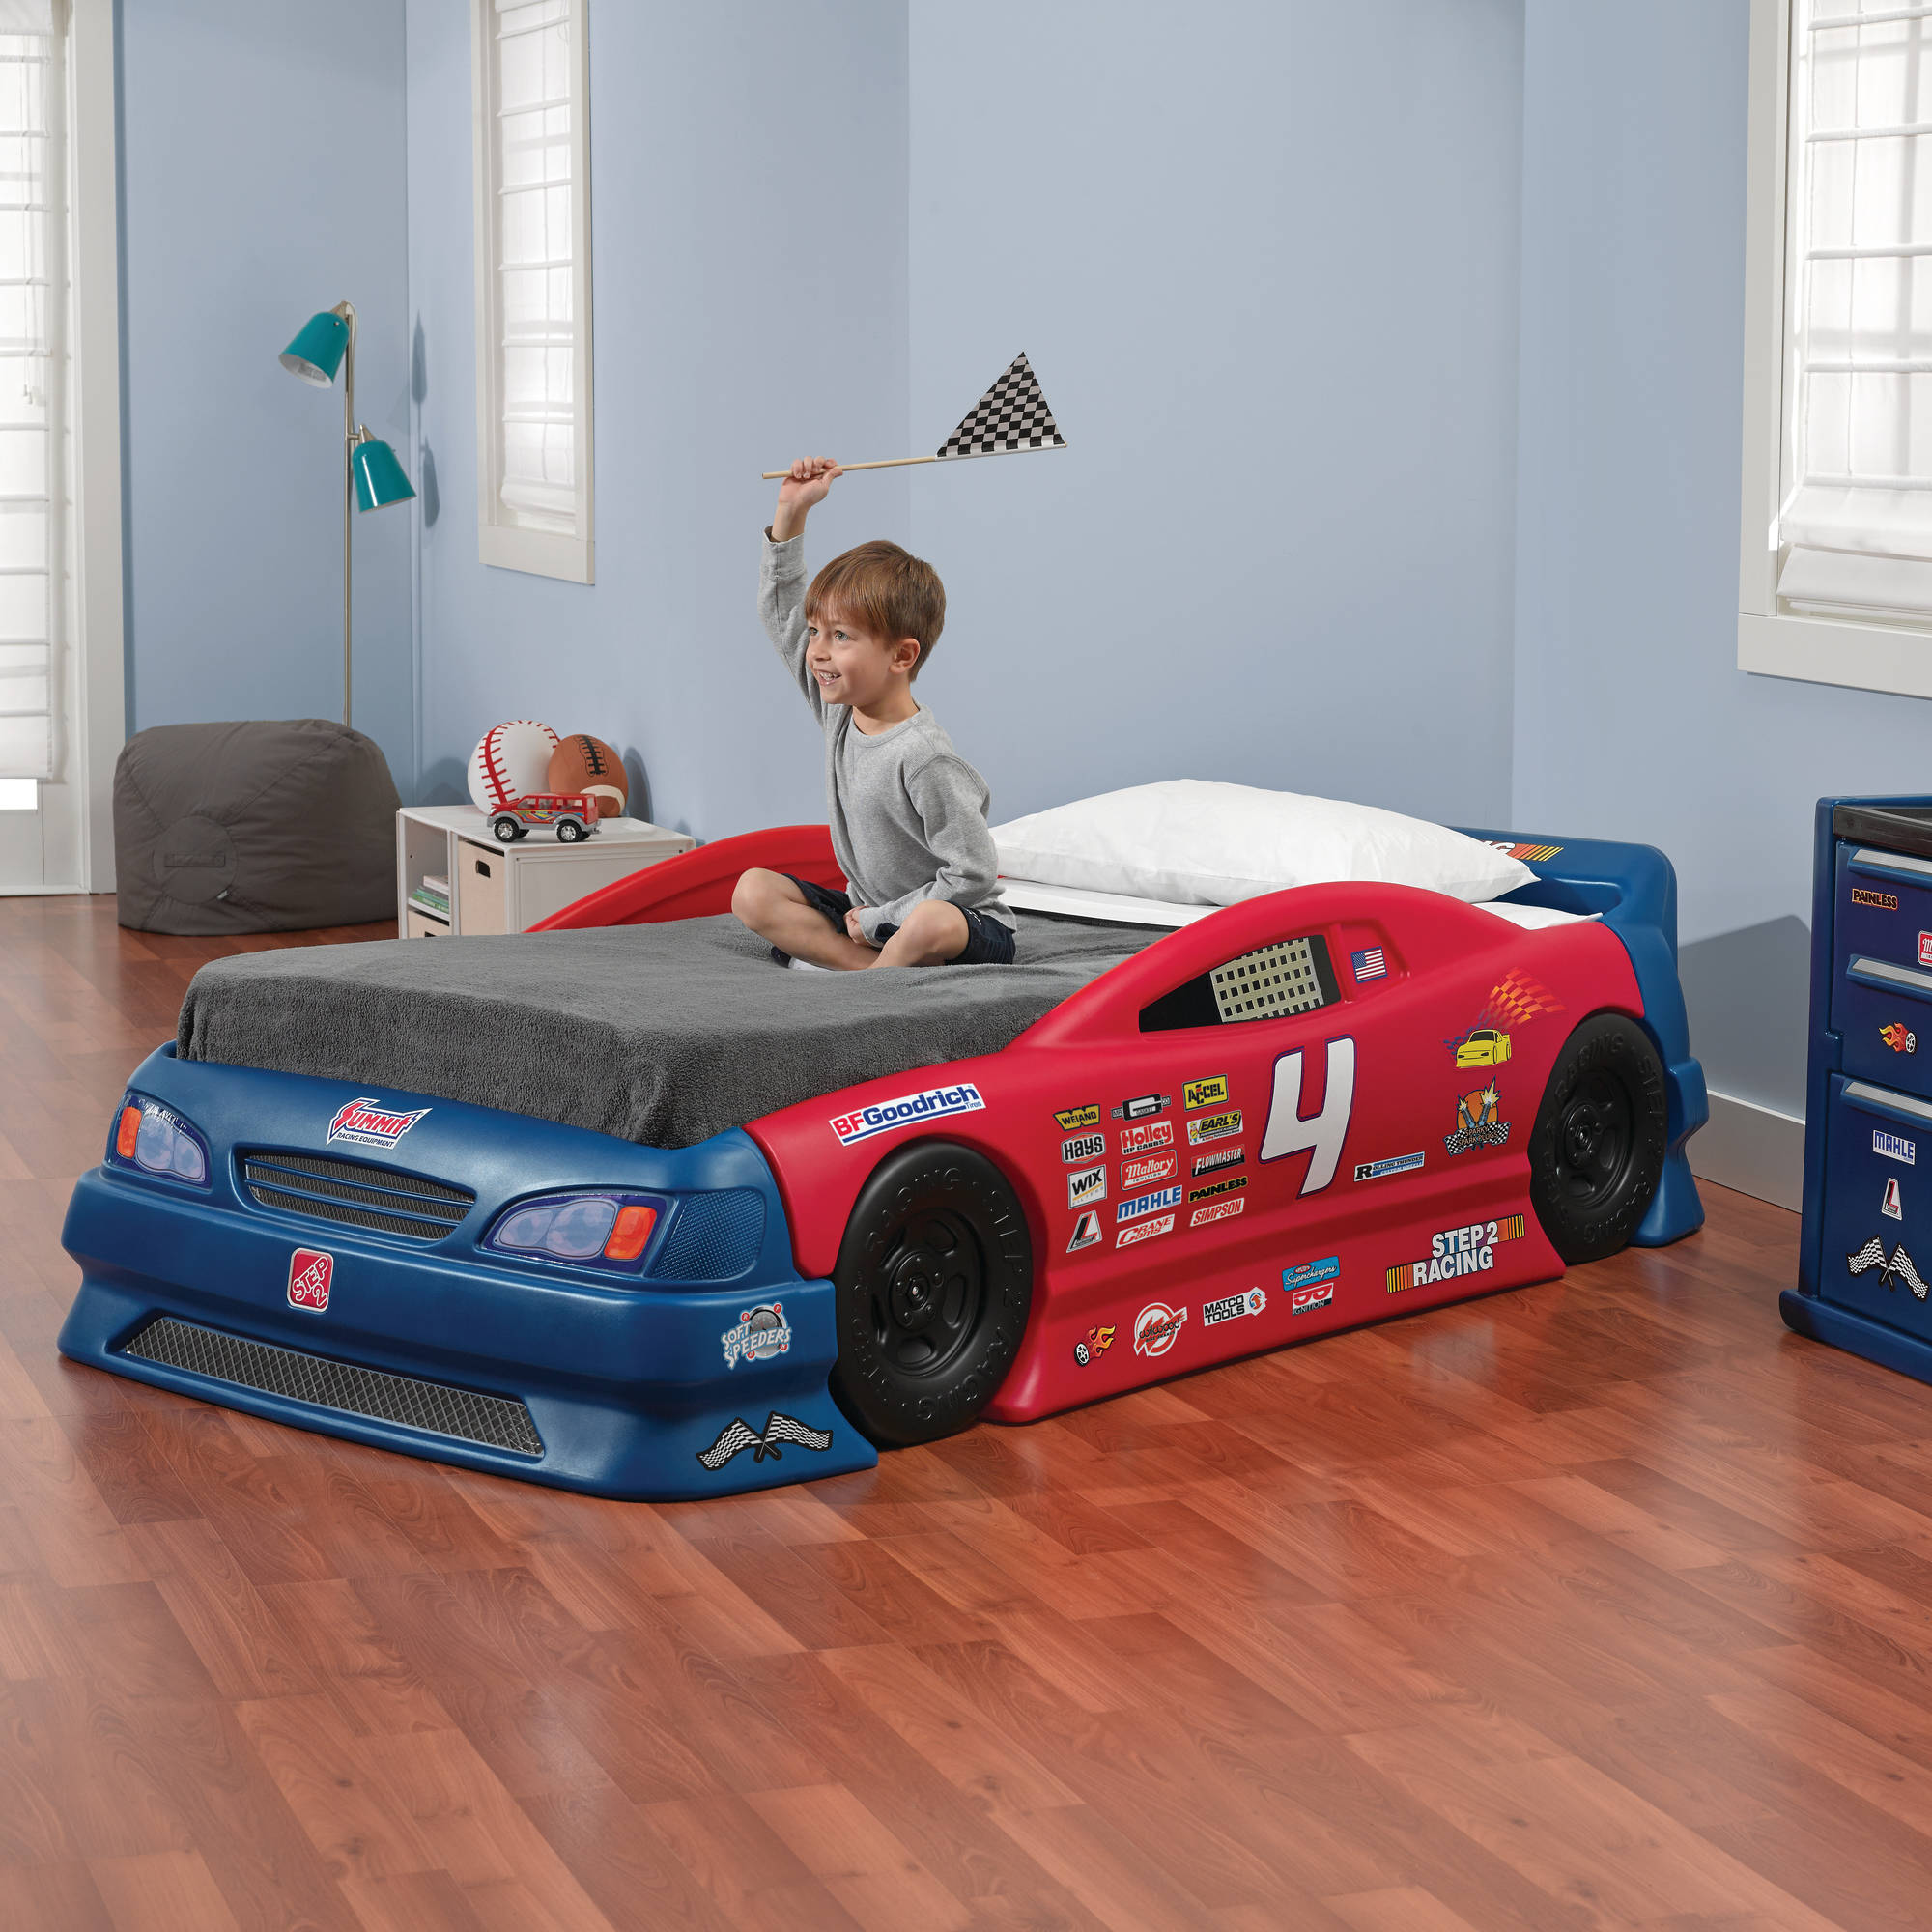 Nascar Bedroom Furniture Race Car Toddler Bed  Walmart